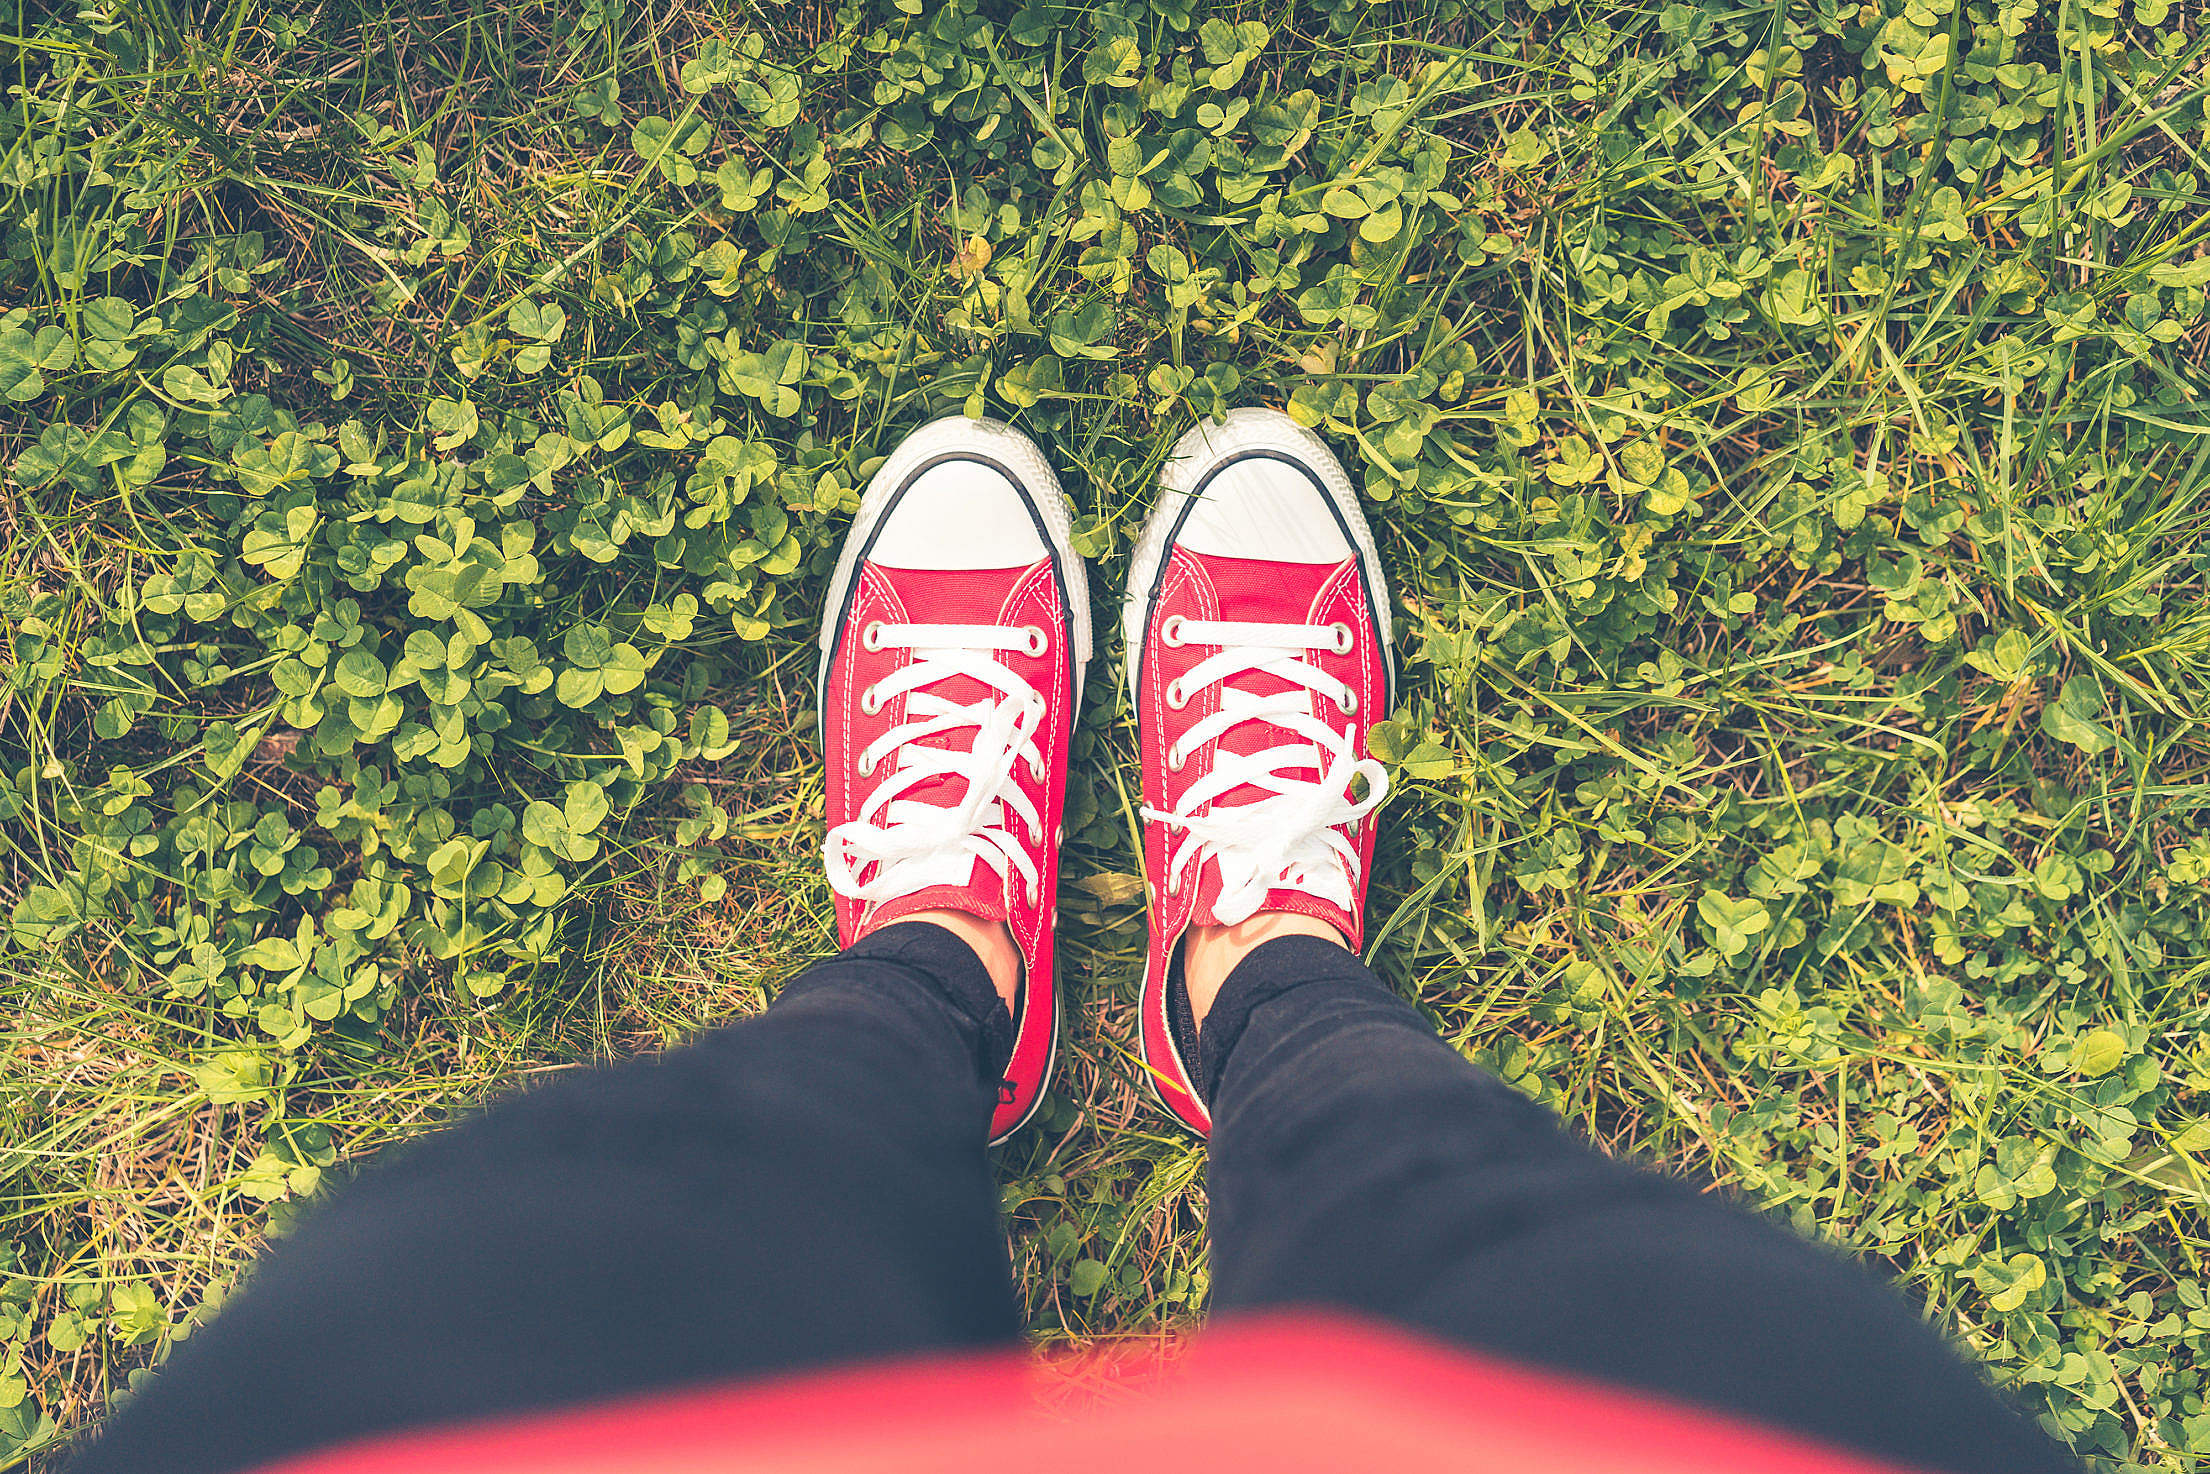 Girl with Red Shoes in Grass FPV Free Stock Photo